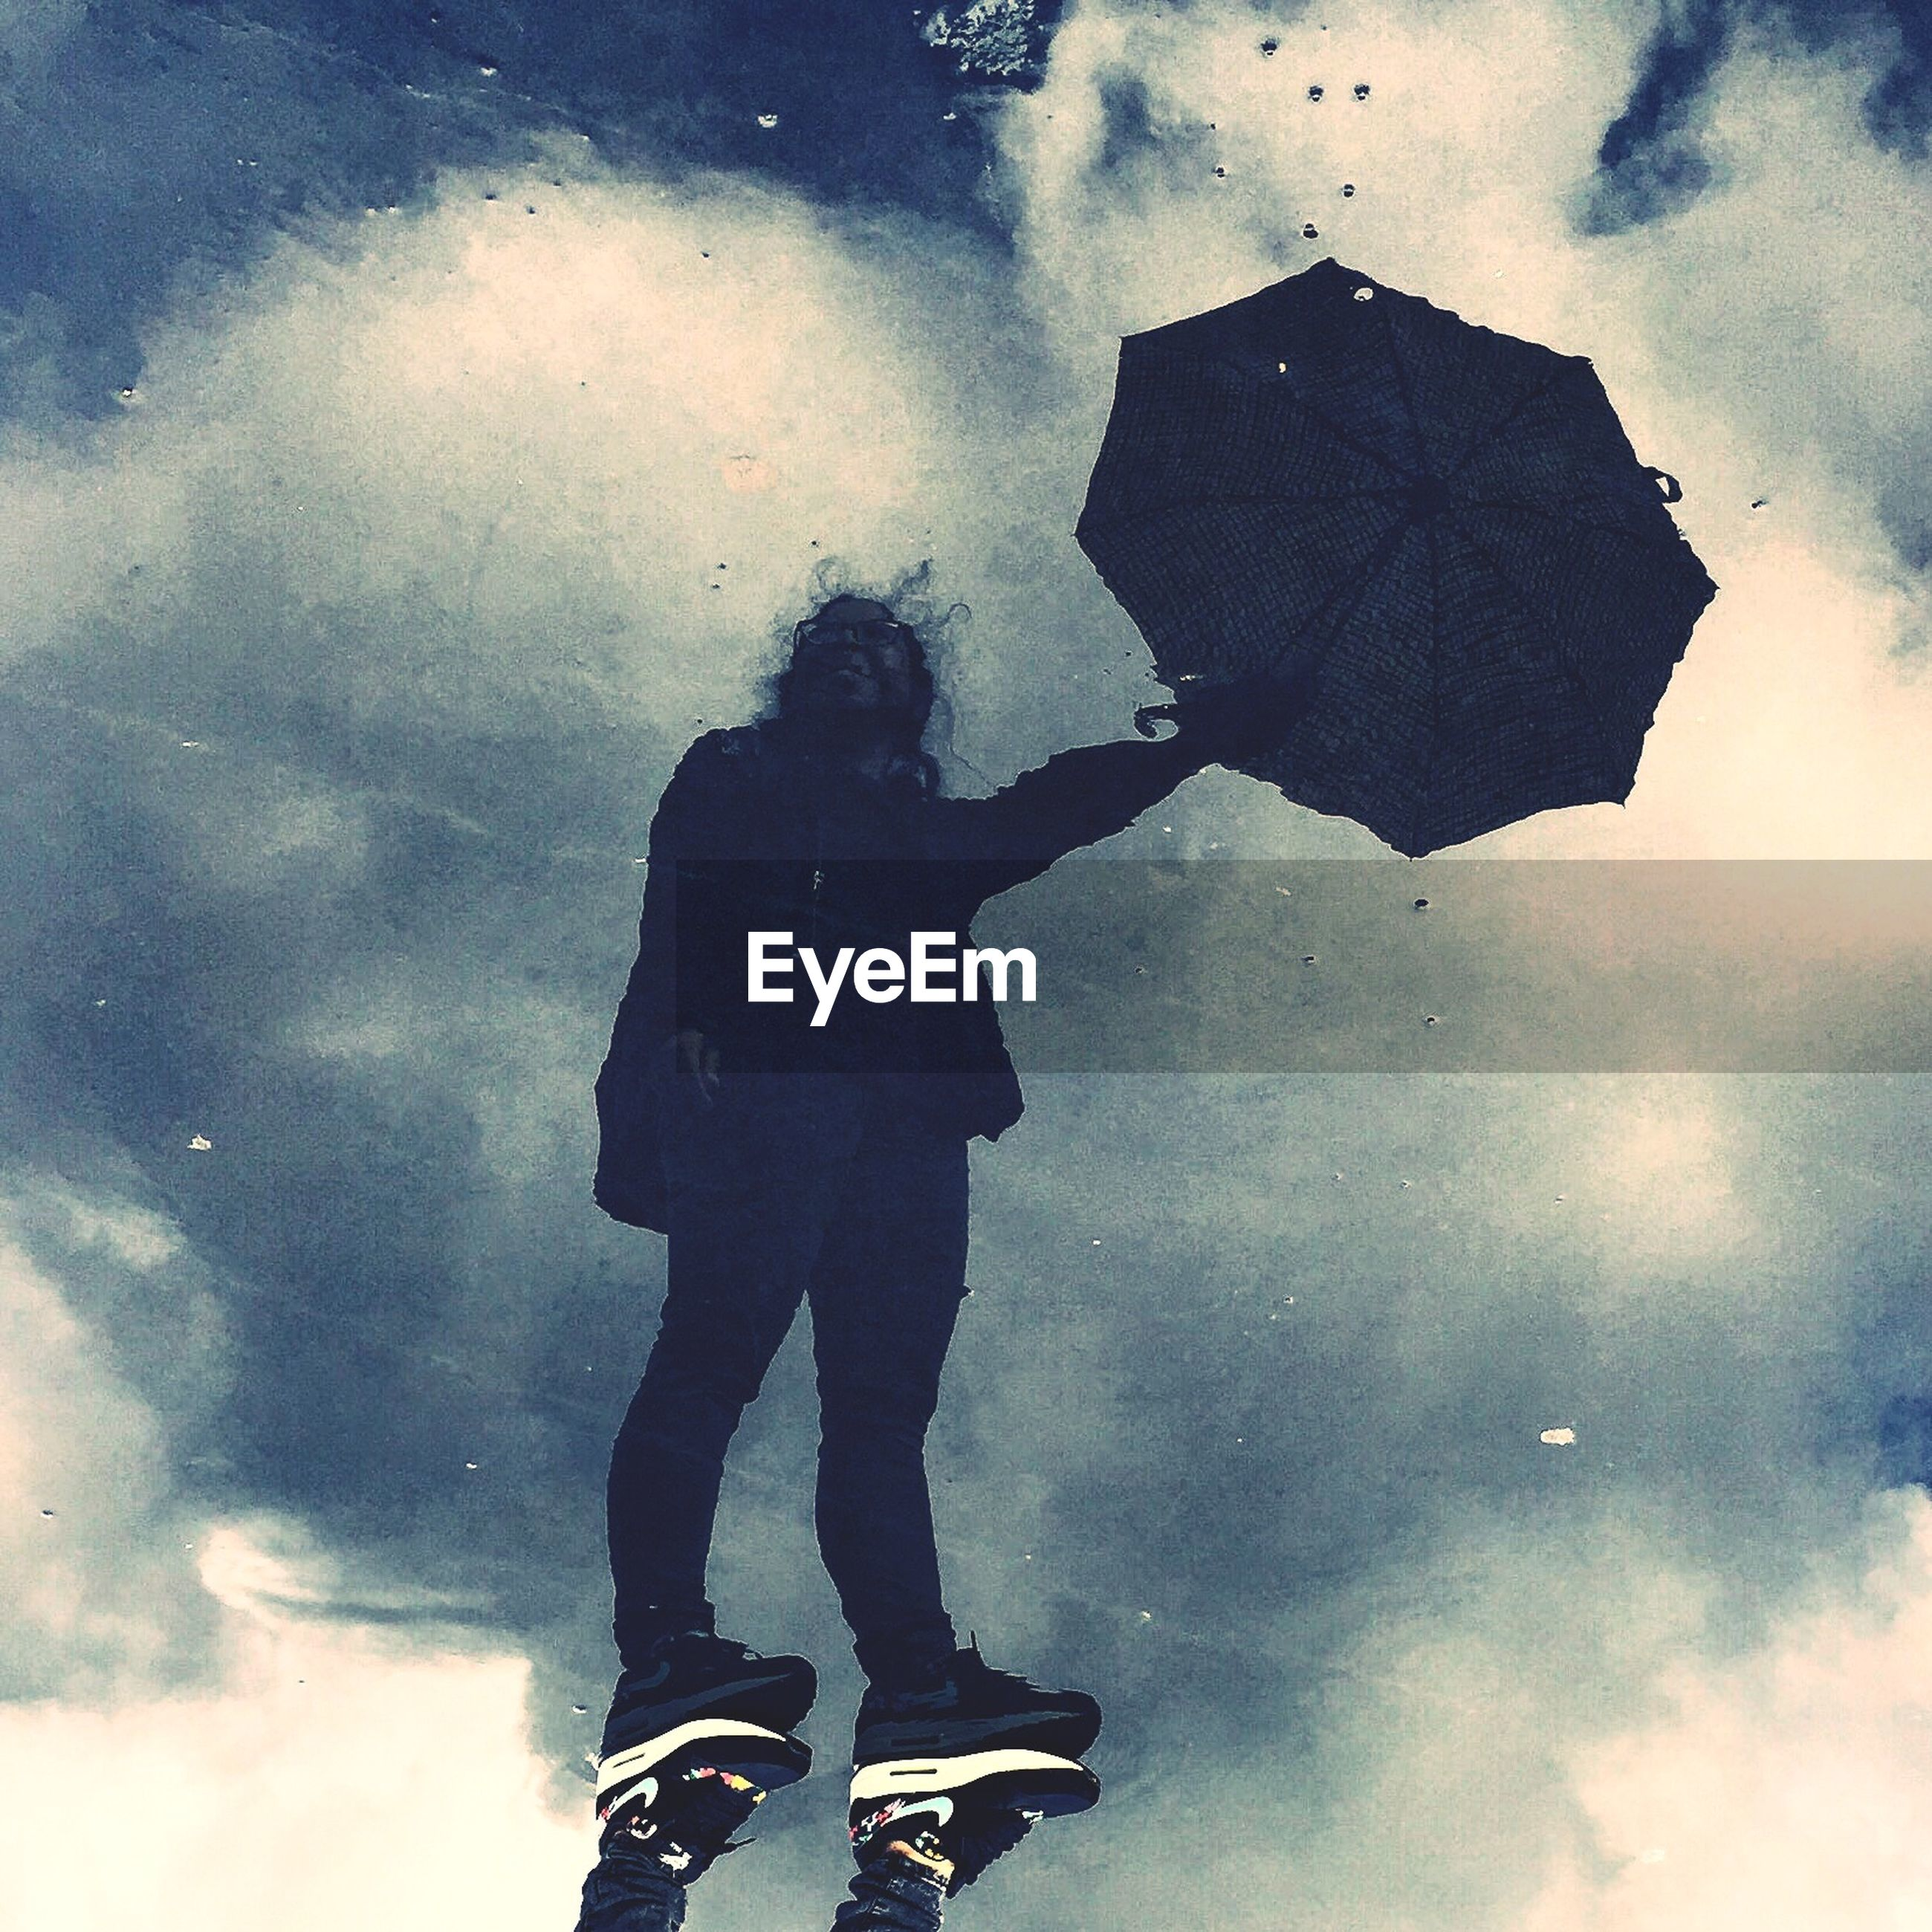 lifestyles, puddle, leisure activity, standing, men, water, low section, reflection, person, weather, high angle view, wet, season, street, unrecognizable person, silhouette, rain, cloud - sky